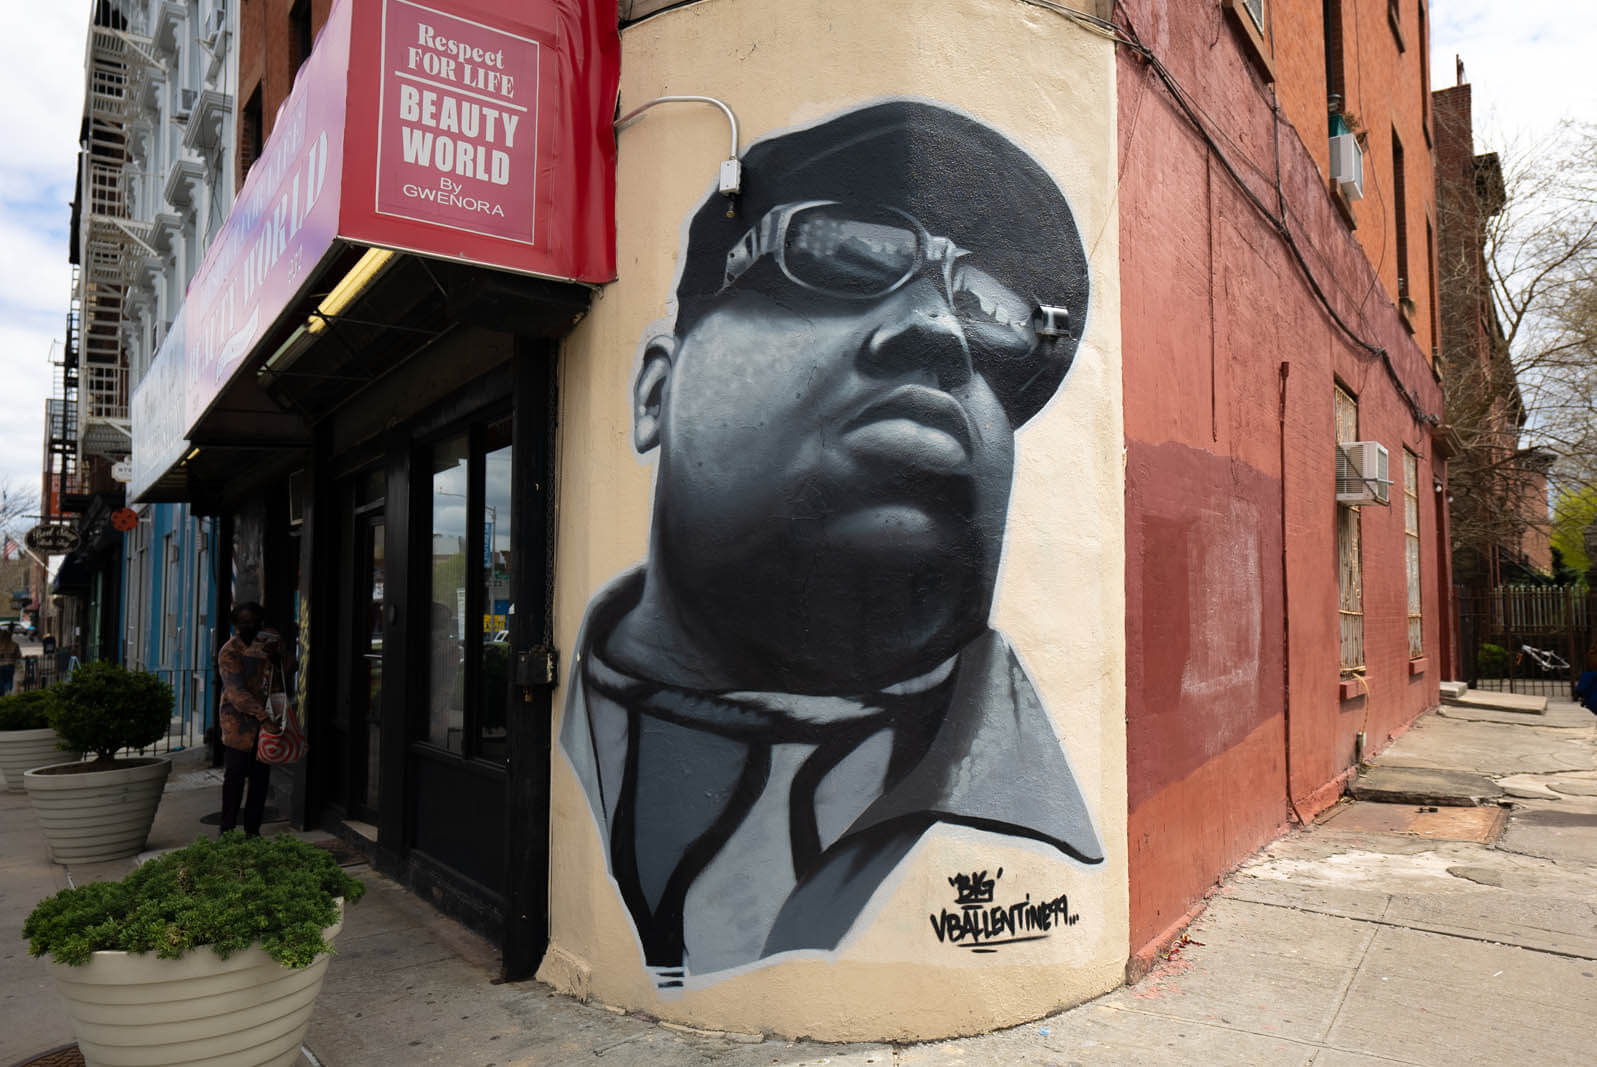 Biggie Smalls Mural at Respect For Life Barbershop in Clinton Hill by Vincent Ballentine in Brooklyn